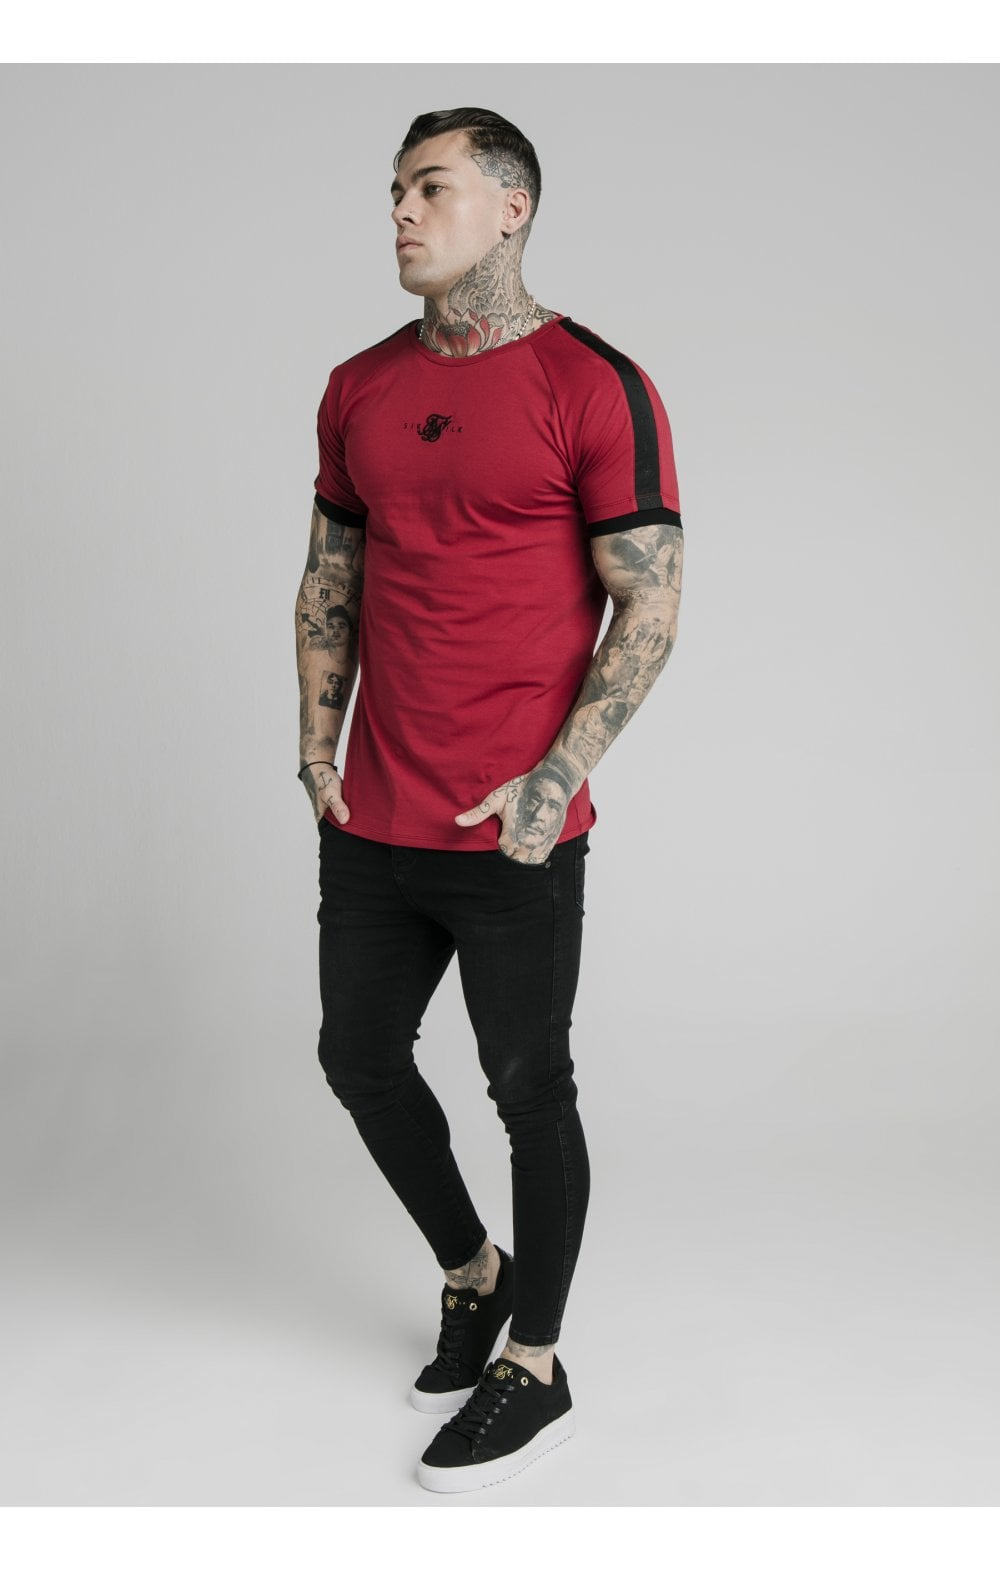 SikSilk S/S Raglan Tape Gym Tee - Red (2)